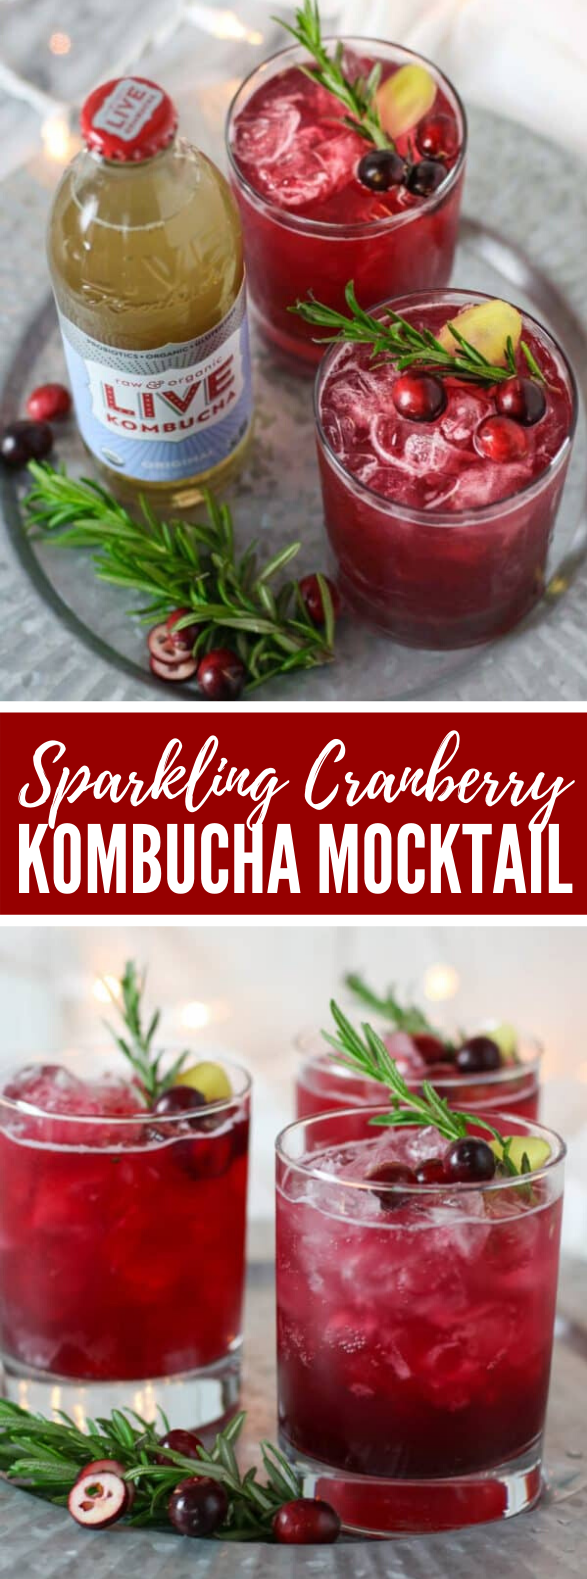 Sparkling Cranberry Kombucha Mocktail #drinks #nonalcohol